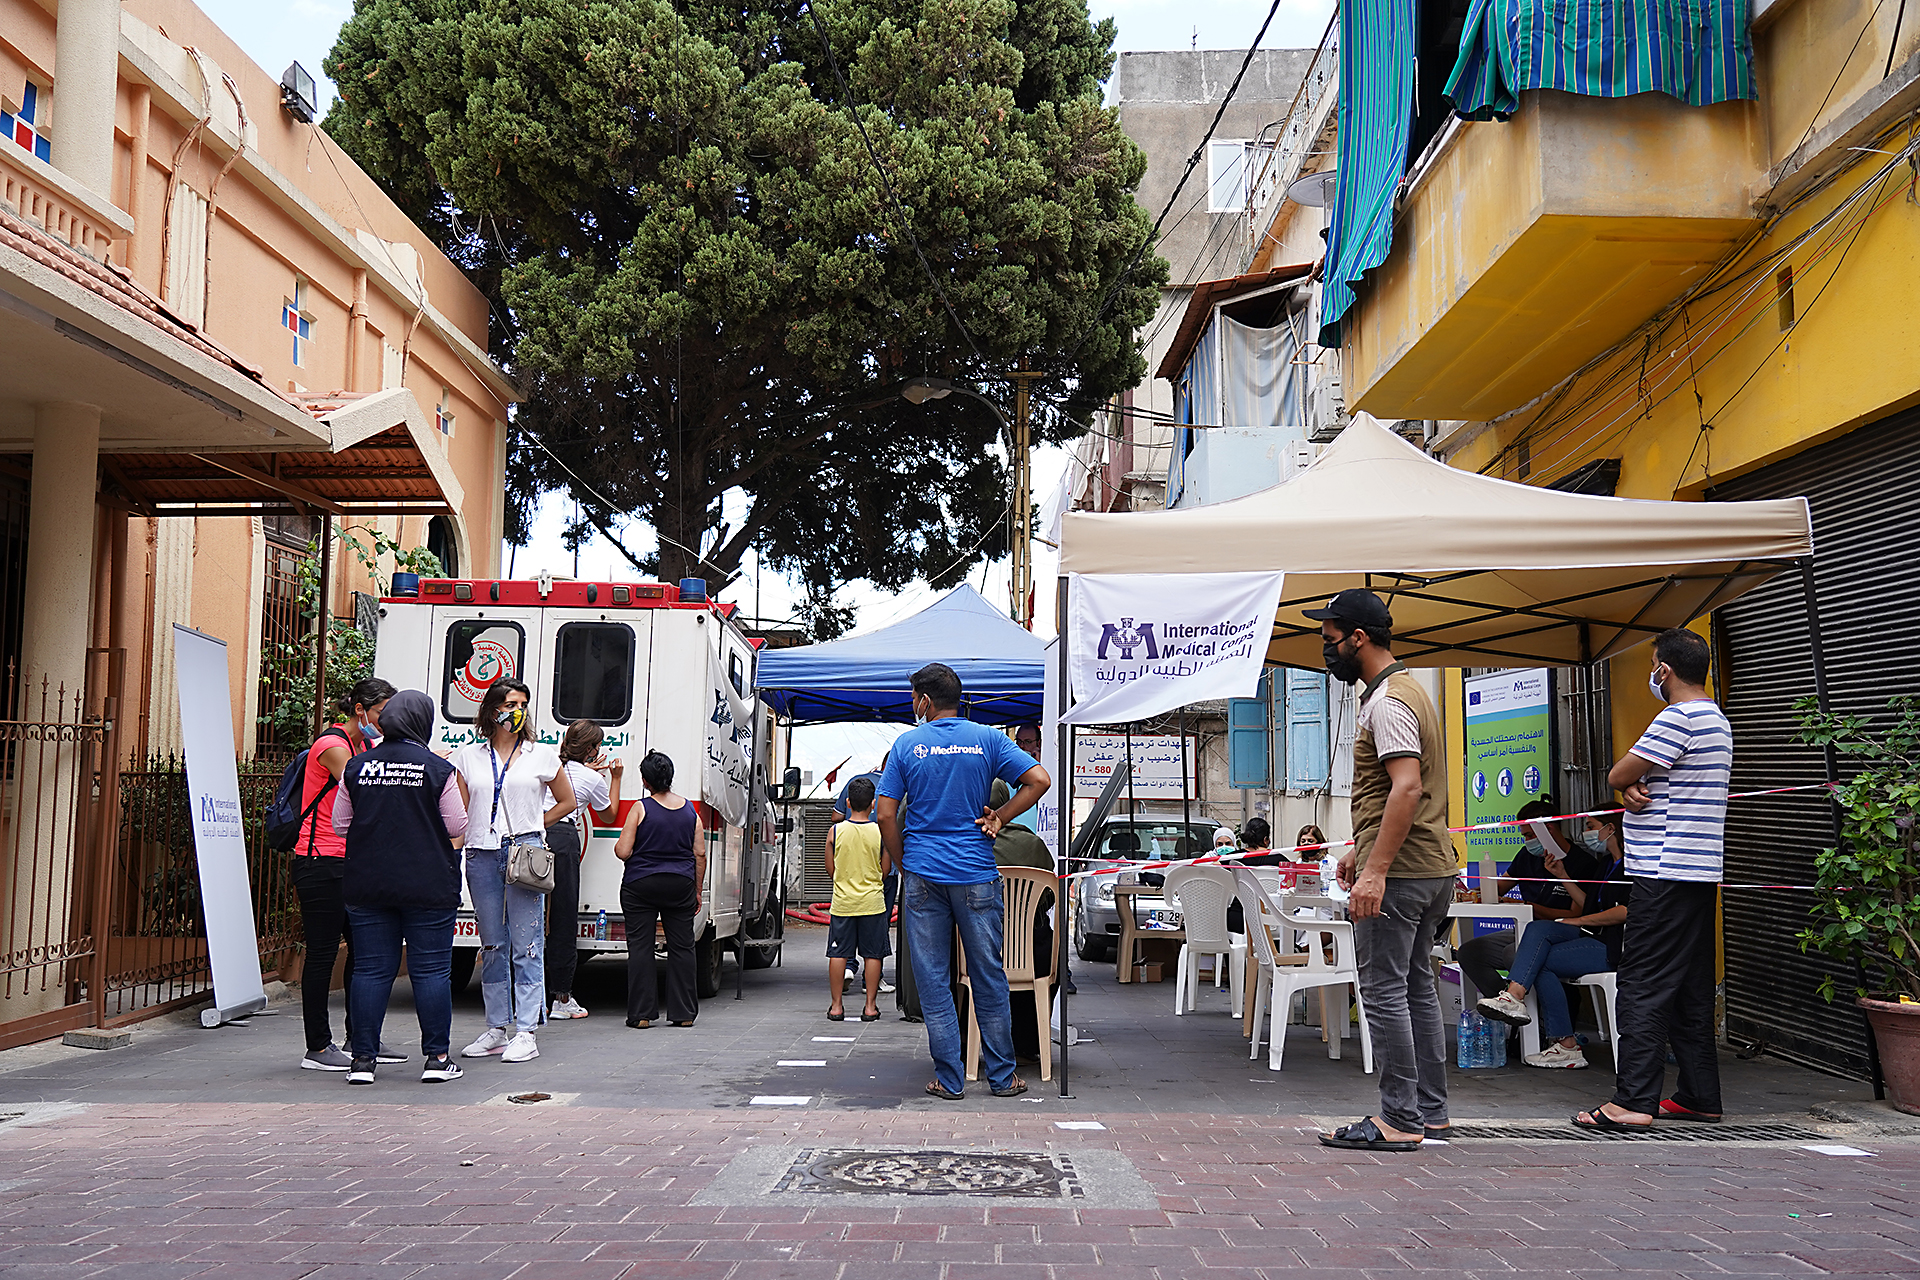 On August 9 and 10, International Medical Corps deployed a Mobile Medical Unit and a Mental Health Unit to Karm El Zaytoun, a neighborhood damaged by the port explosion in Beirut. The mobile units offer primary healthcare and psychological first-aid services to those affected by the disaster.